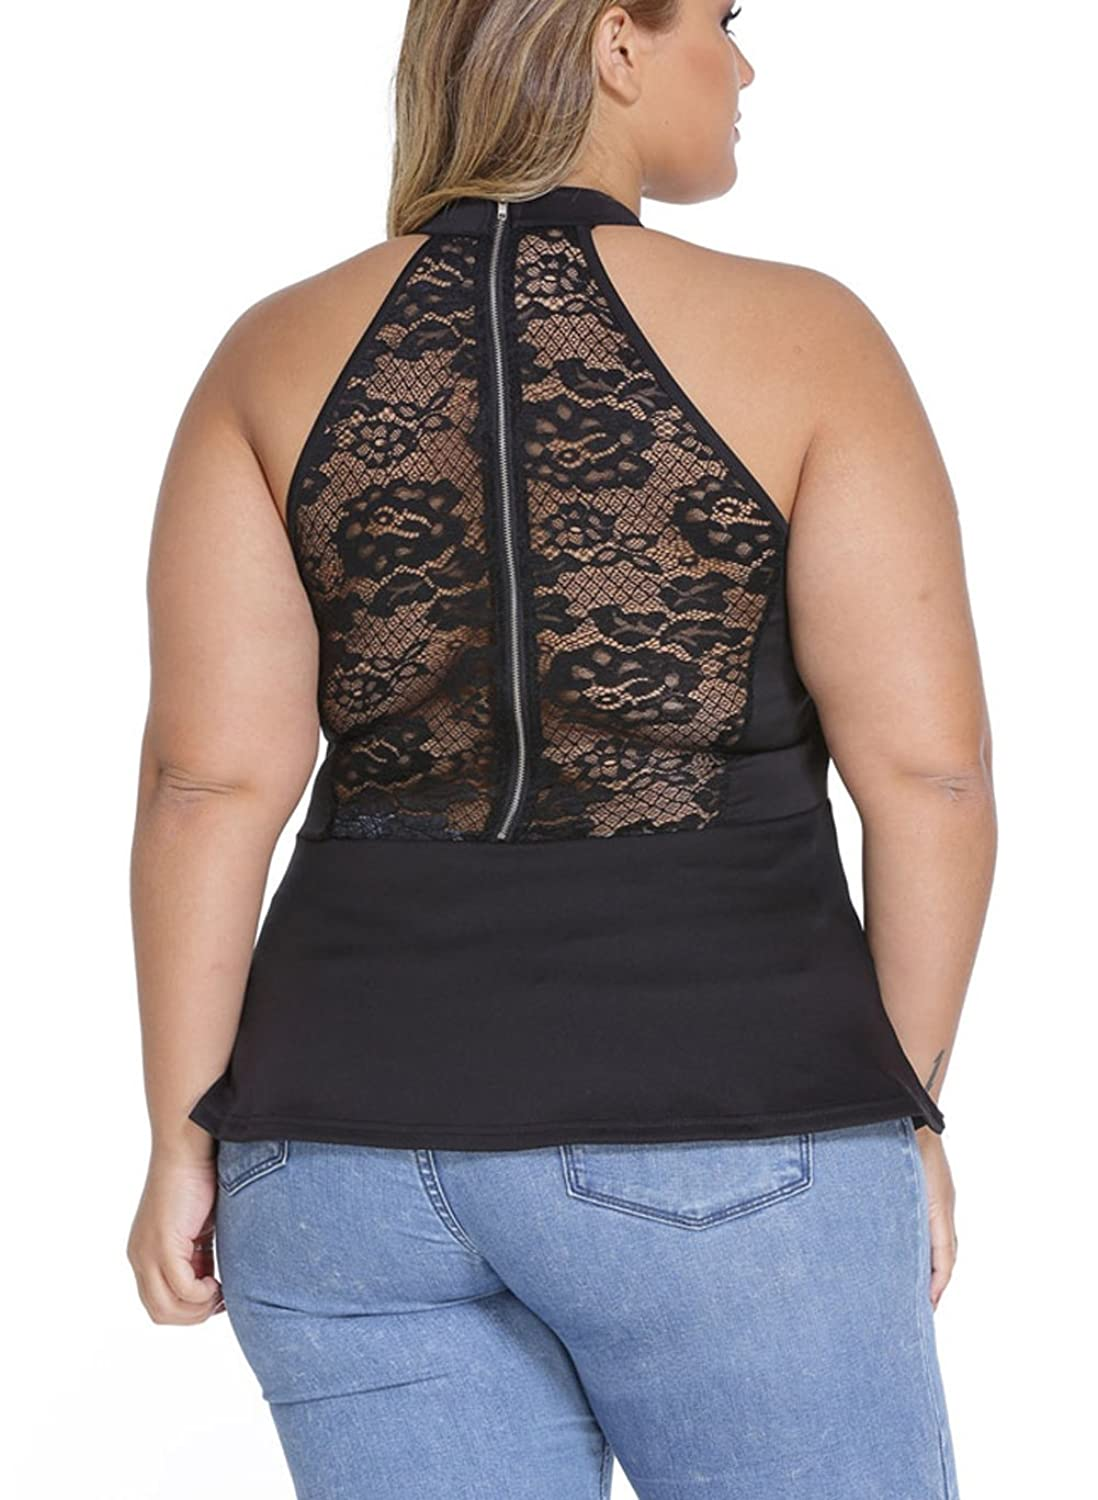 Fashionmore Women's Plus Size Solid Color Round Neck Sleeveless Lace Peplum Tops